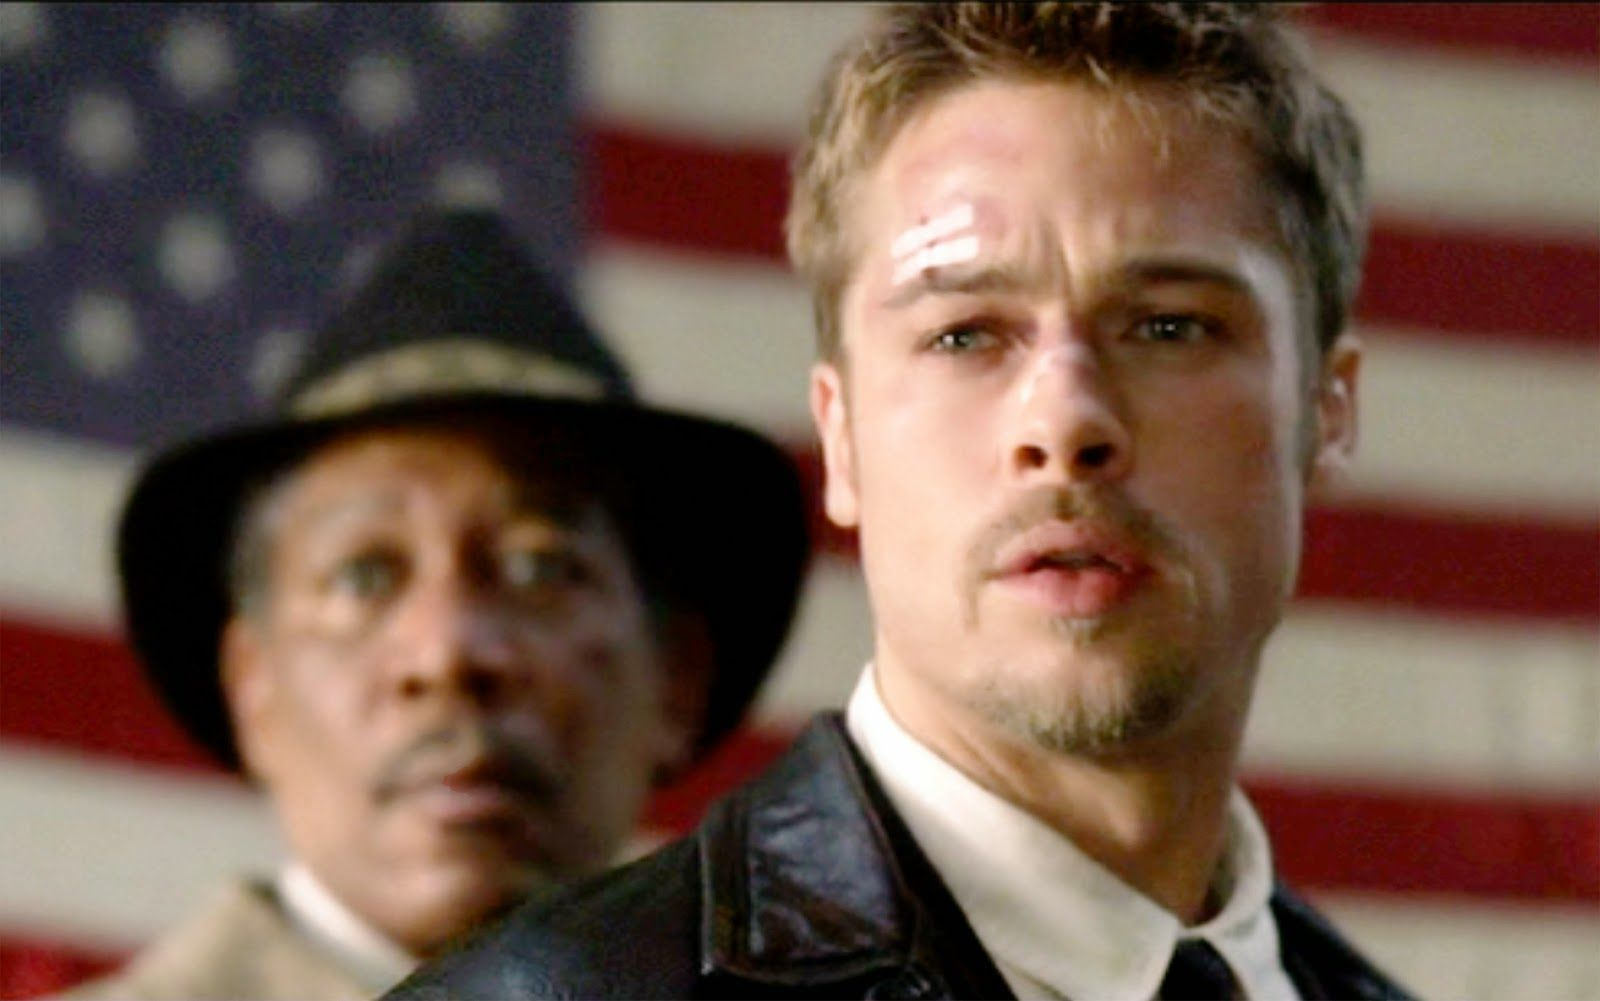 Morgan Freeman (as Detective William Somerset) and Brad Pitt (as Detective David Mills). Theatrical release September 22, 1995. Screen capture. Copyright © 1995 New Line Productions, Inc. Credit: © 1995 New Line Prod. / Courtesy: Pyxurz.